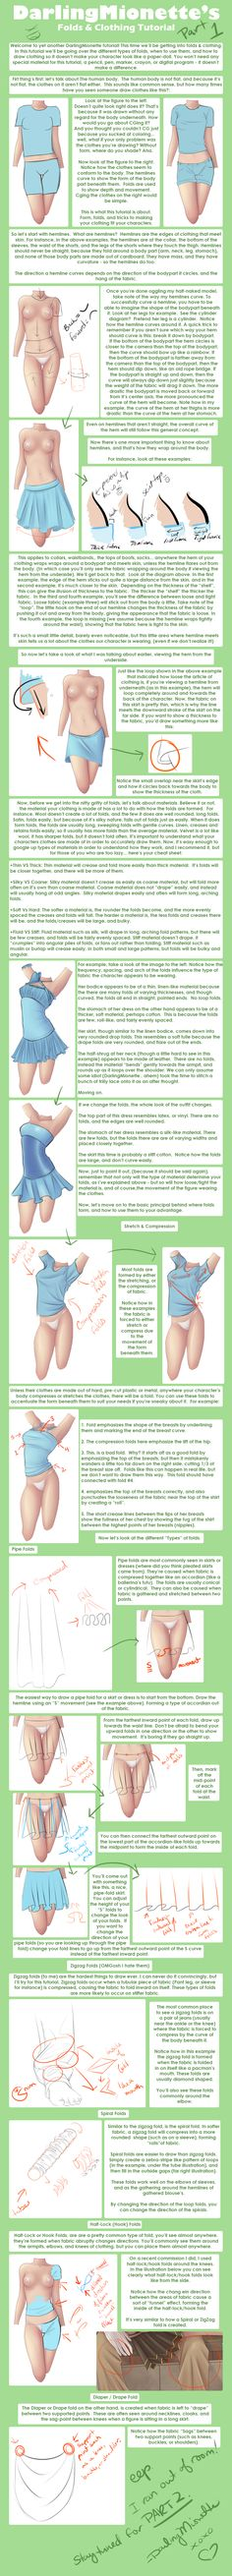 Tutorial - Clothing + Folds 1 by DarlingMionette.deviantart.com on @deviantART